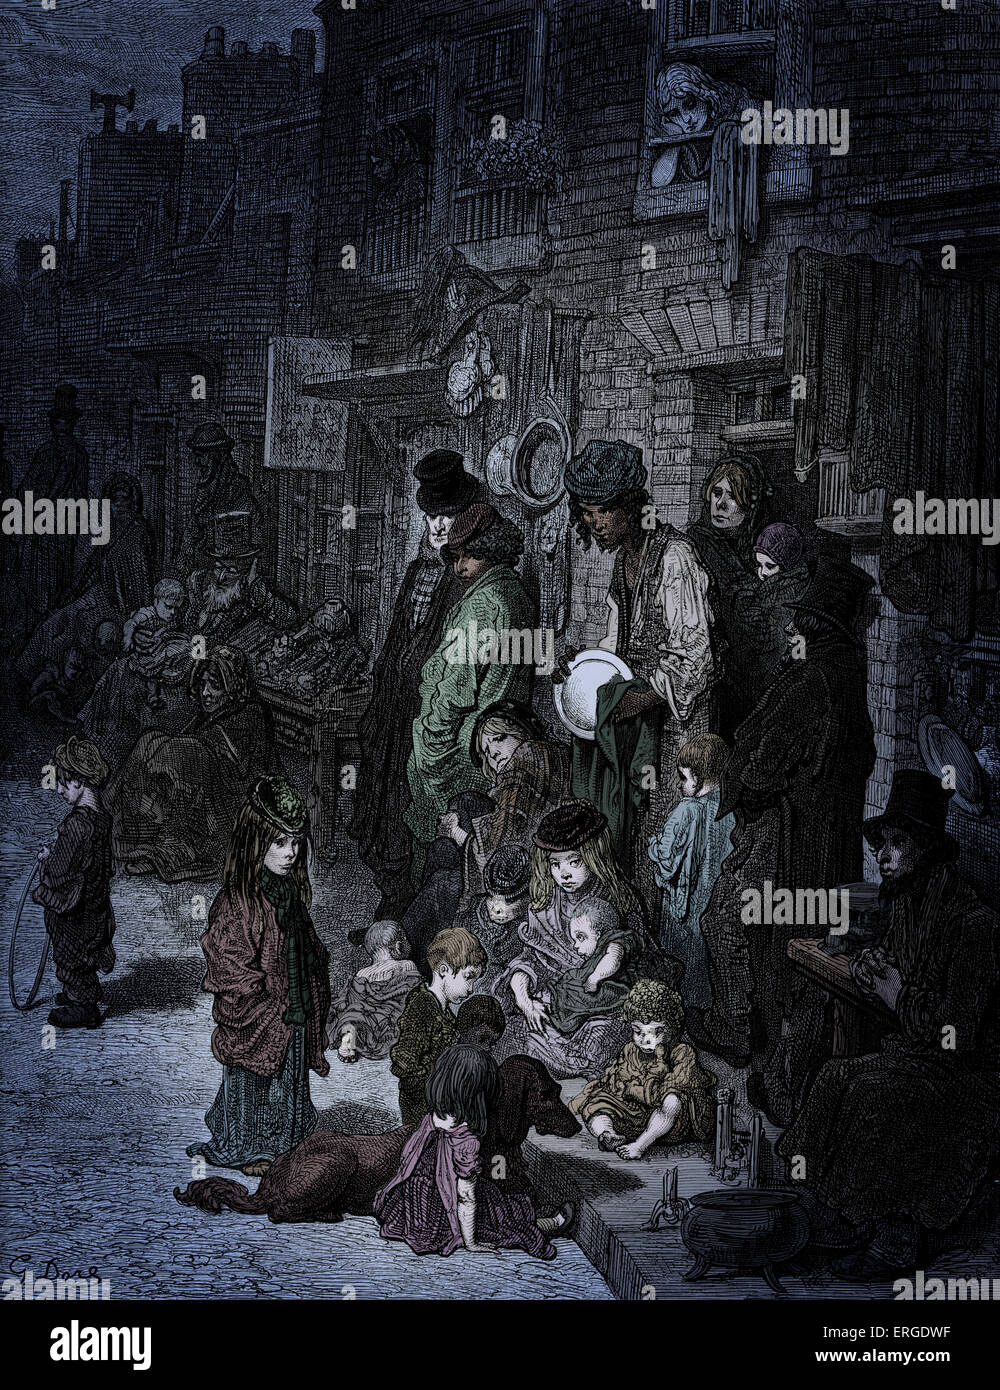 Victorian London- Whitechapel, Wentworth Street. East end of London. Jewish quarter. Engraving by Gustave Doré, - Stock Image